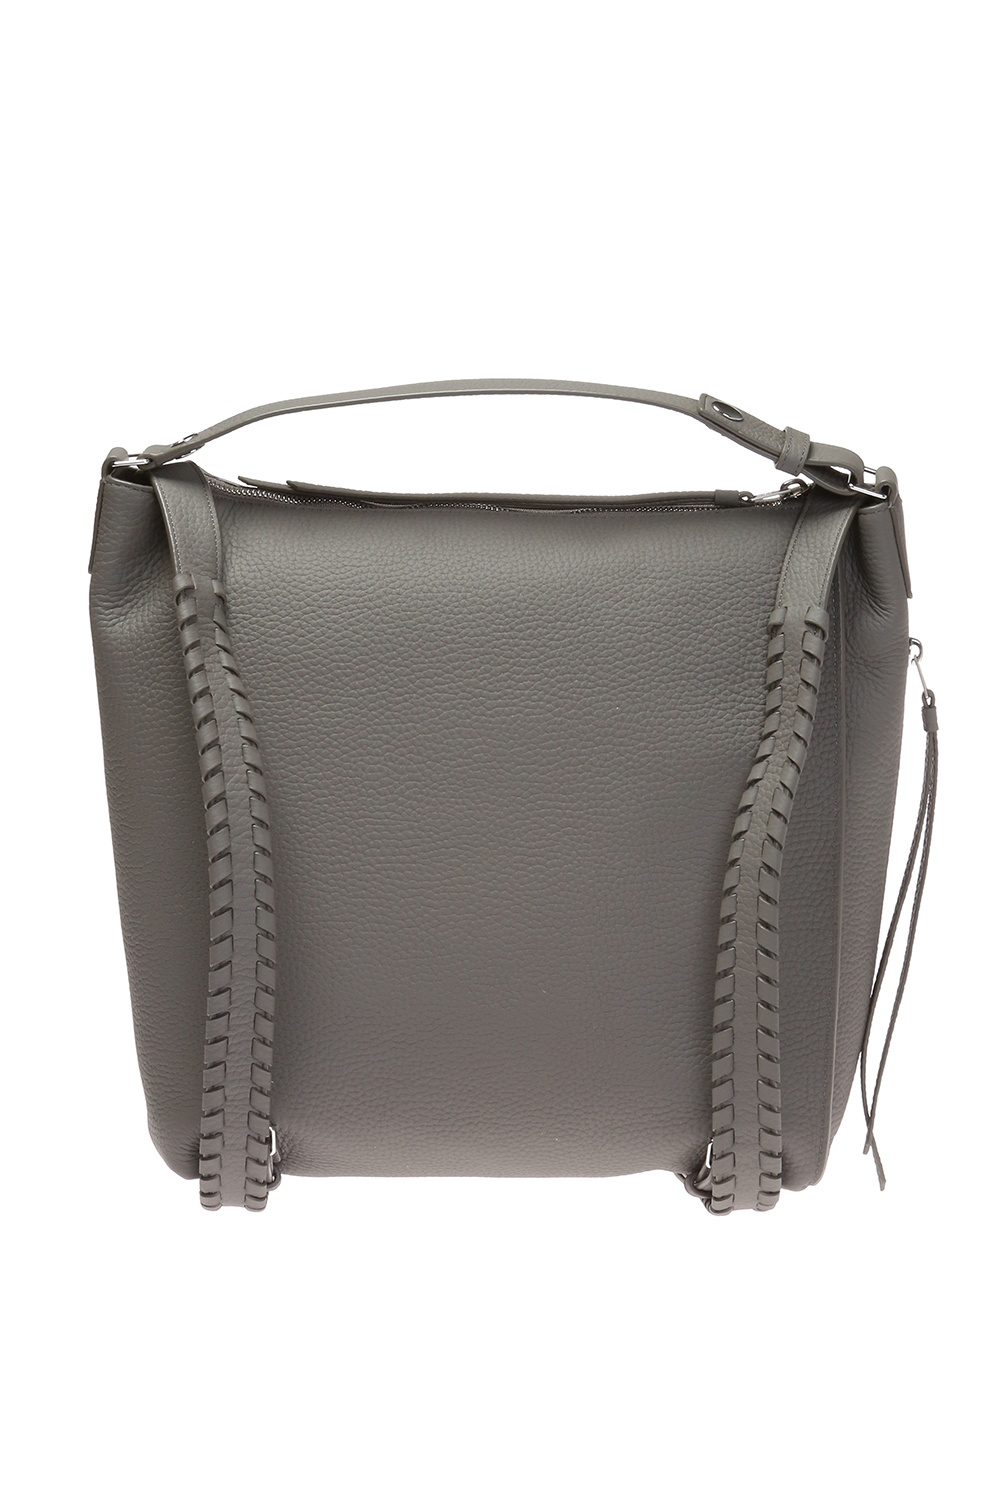 AllSaints 'Kita' backpack